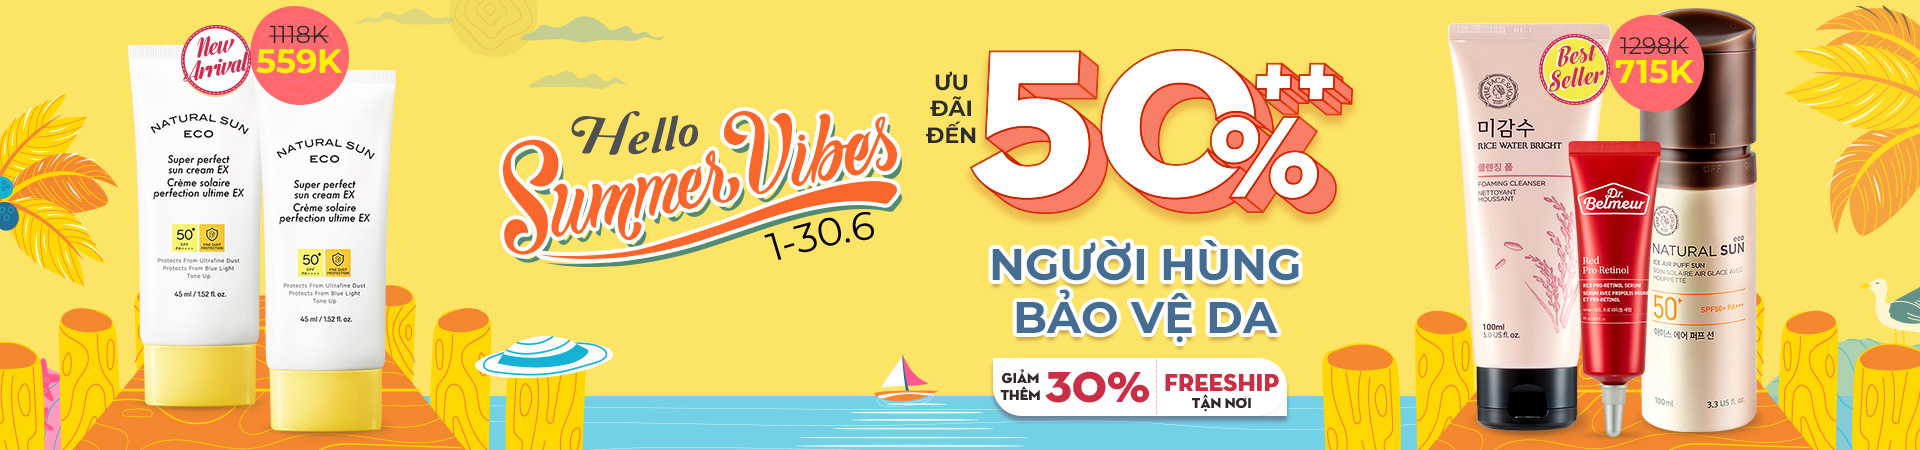 HELLO SUMMER VIBES - CLEANSING GIẢM 15%